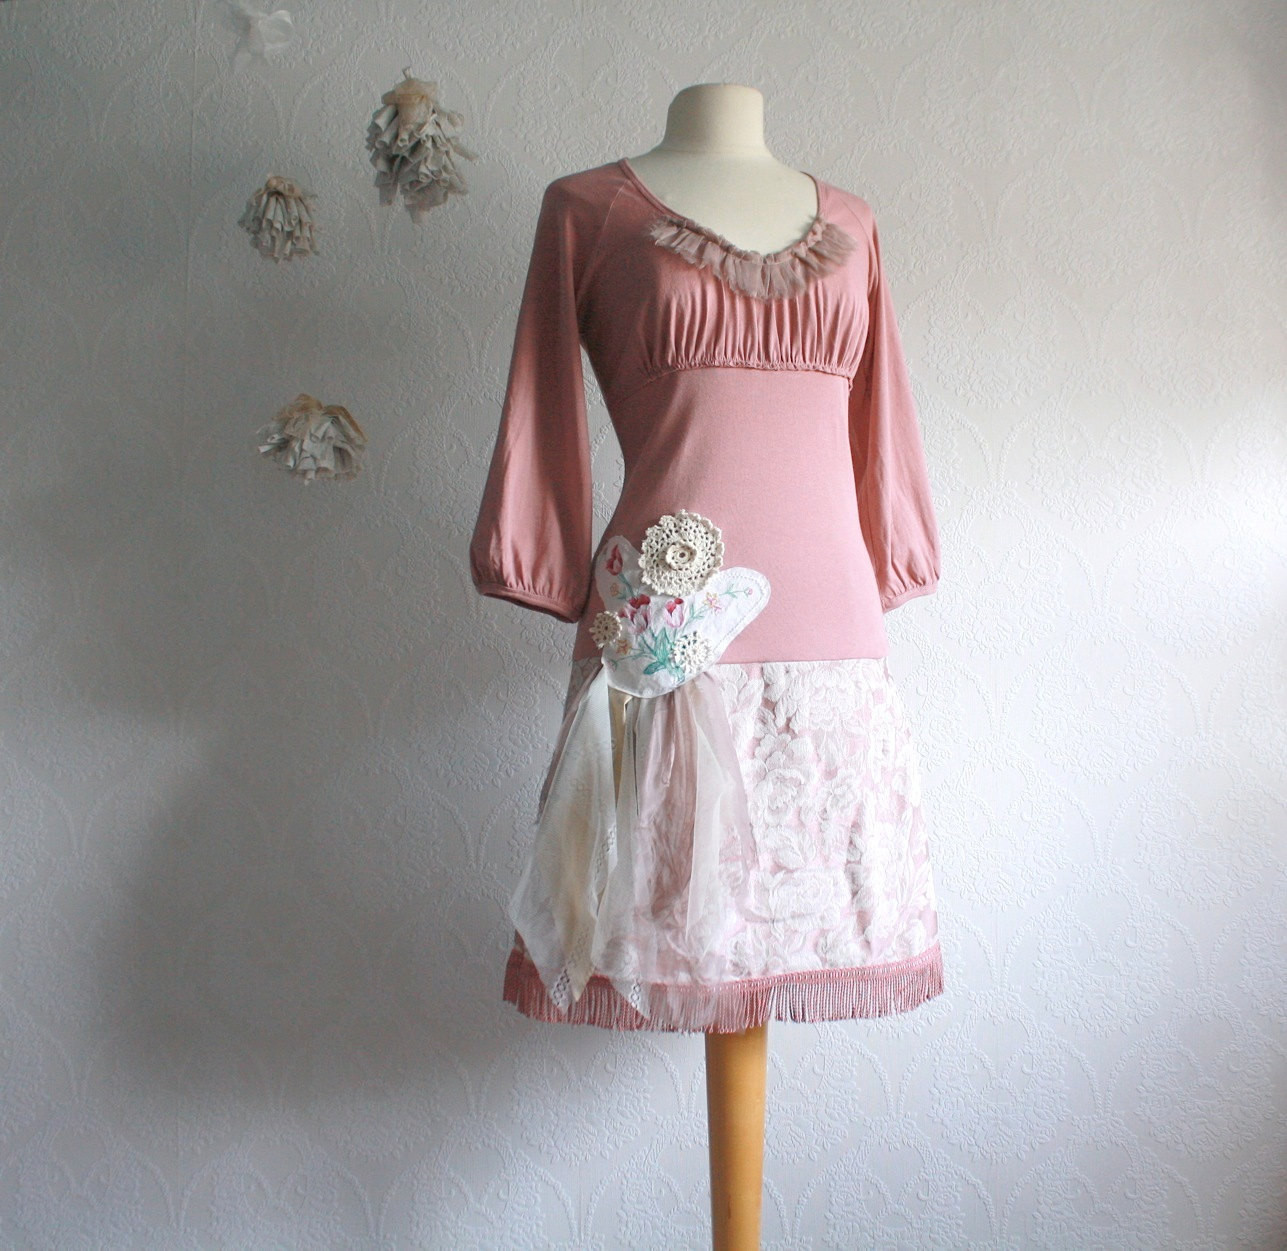 Best ideas about Shabby Chic Clothing . Save or Pin Pink Shabby Chic Dress Upcyced Women s Clothing Dusty Rose Now.